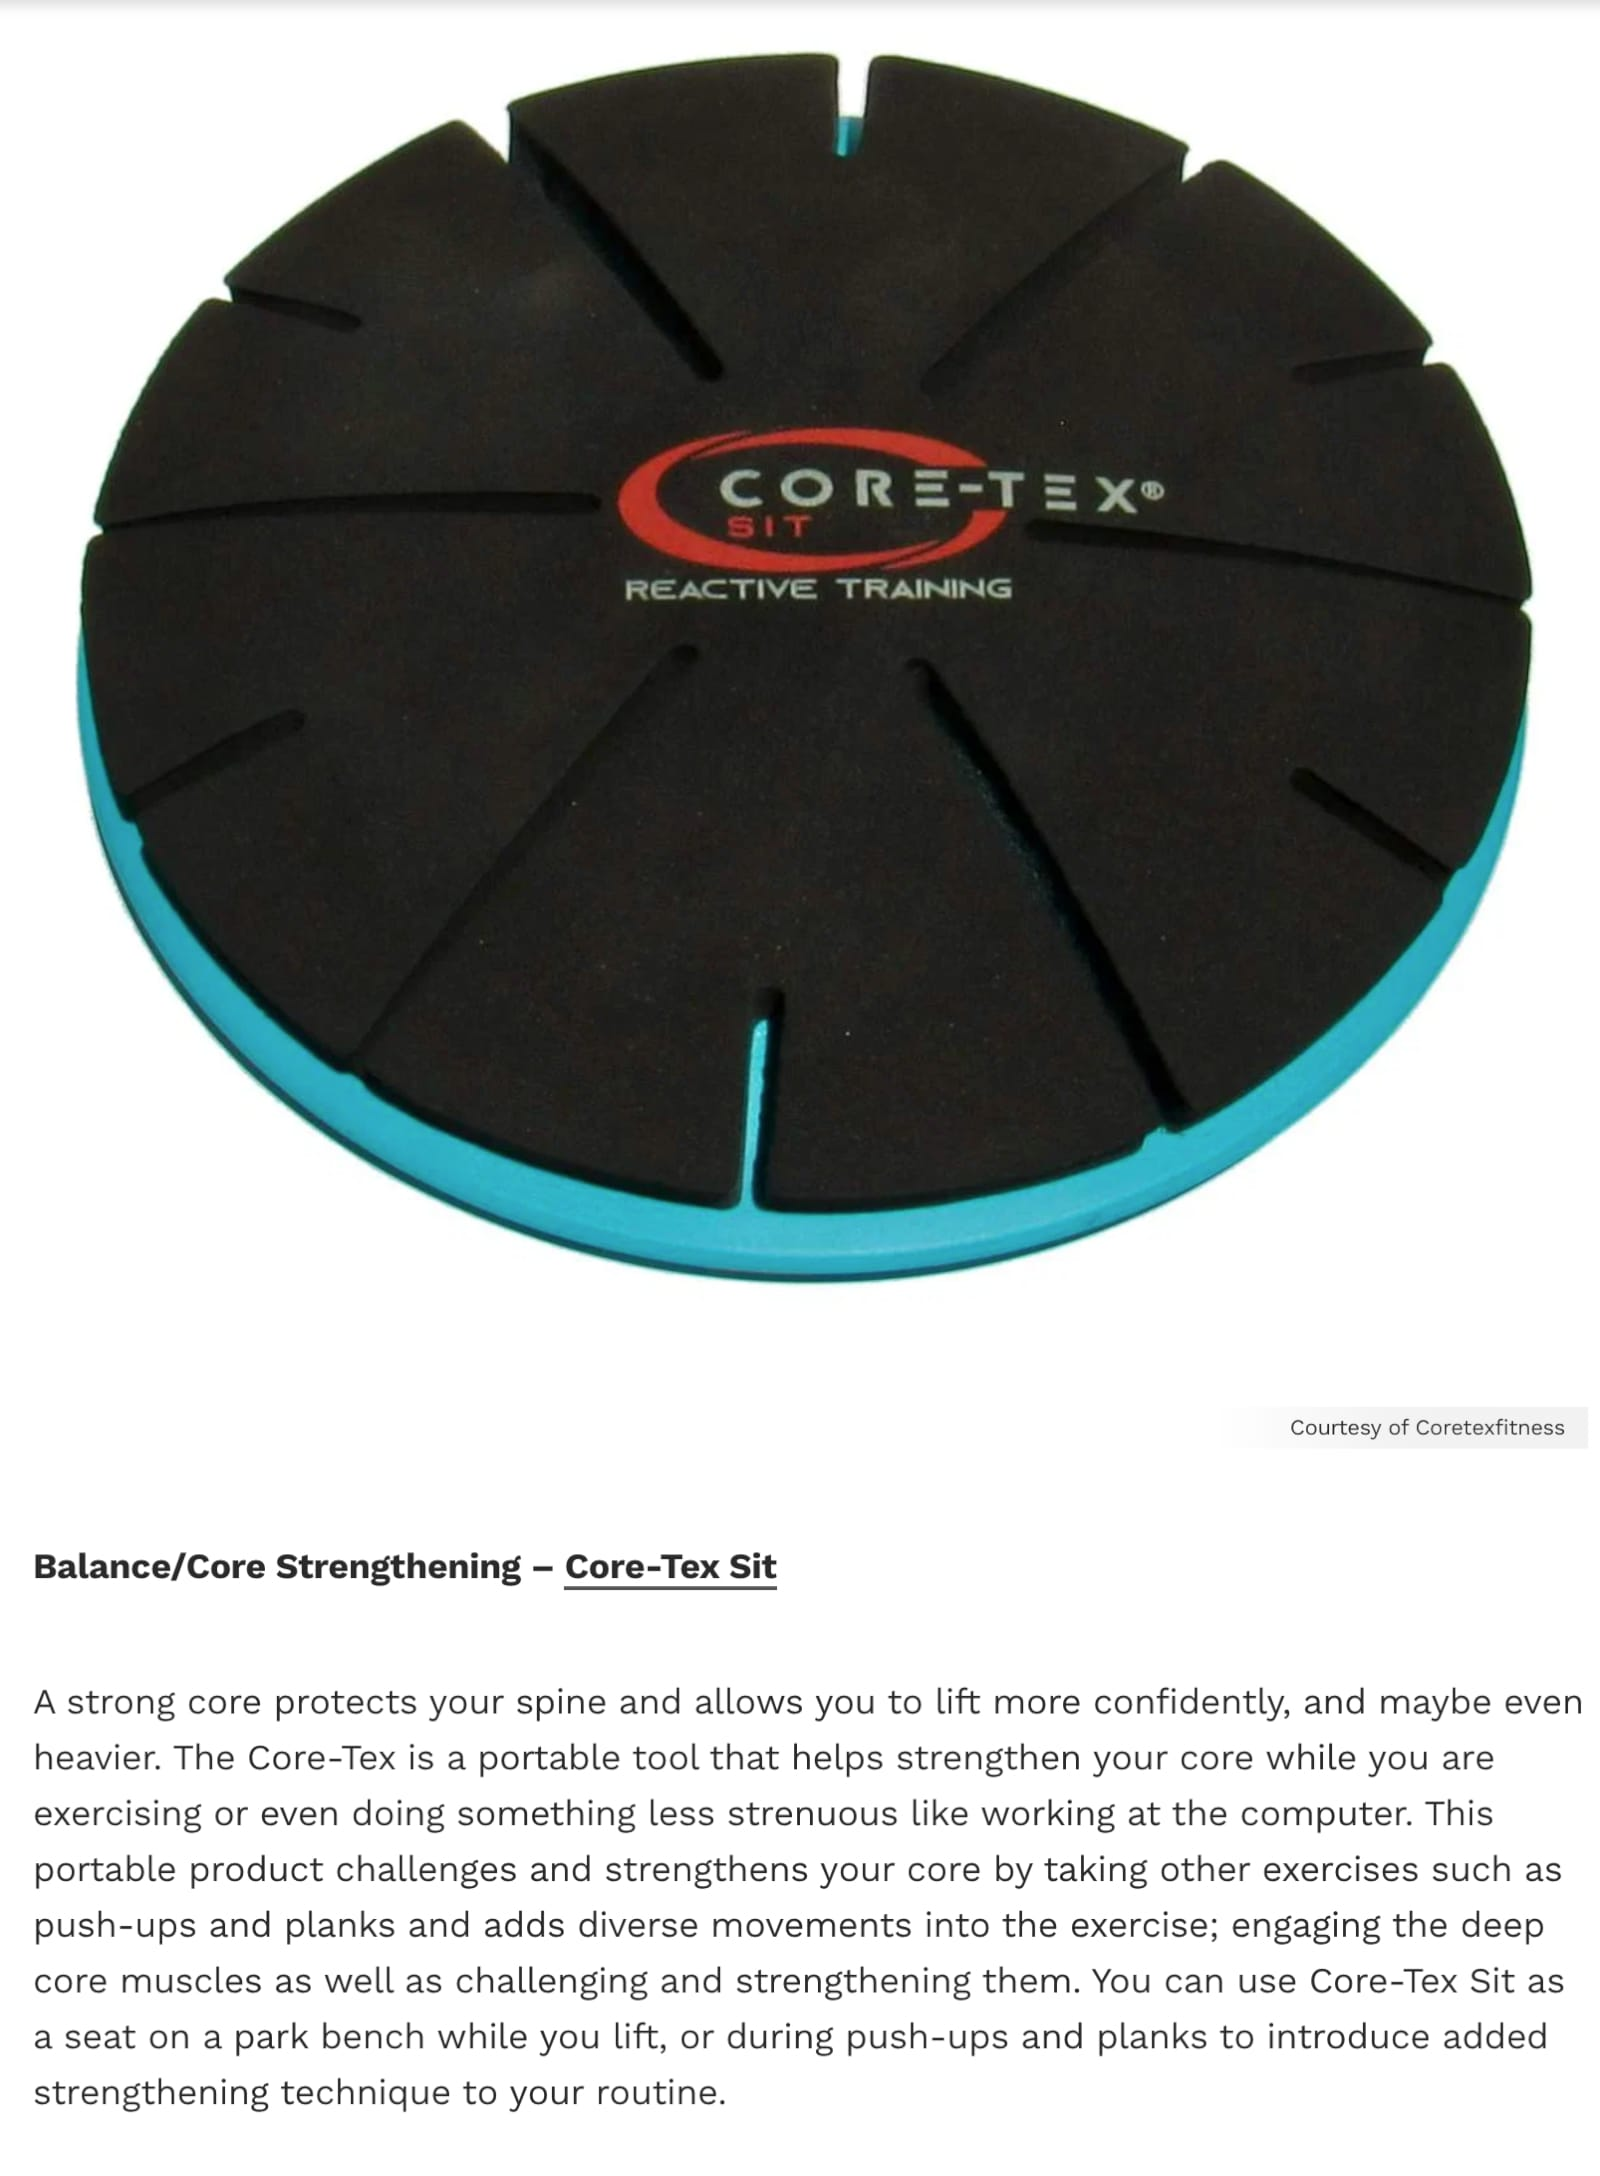 Core-Tex Sit Featured in Muscle & Fitness Magazine June 2021